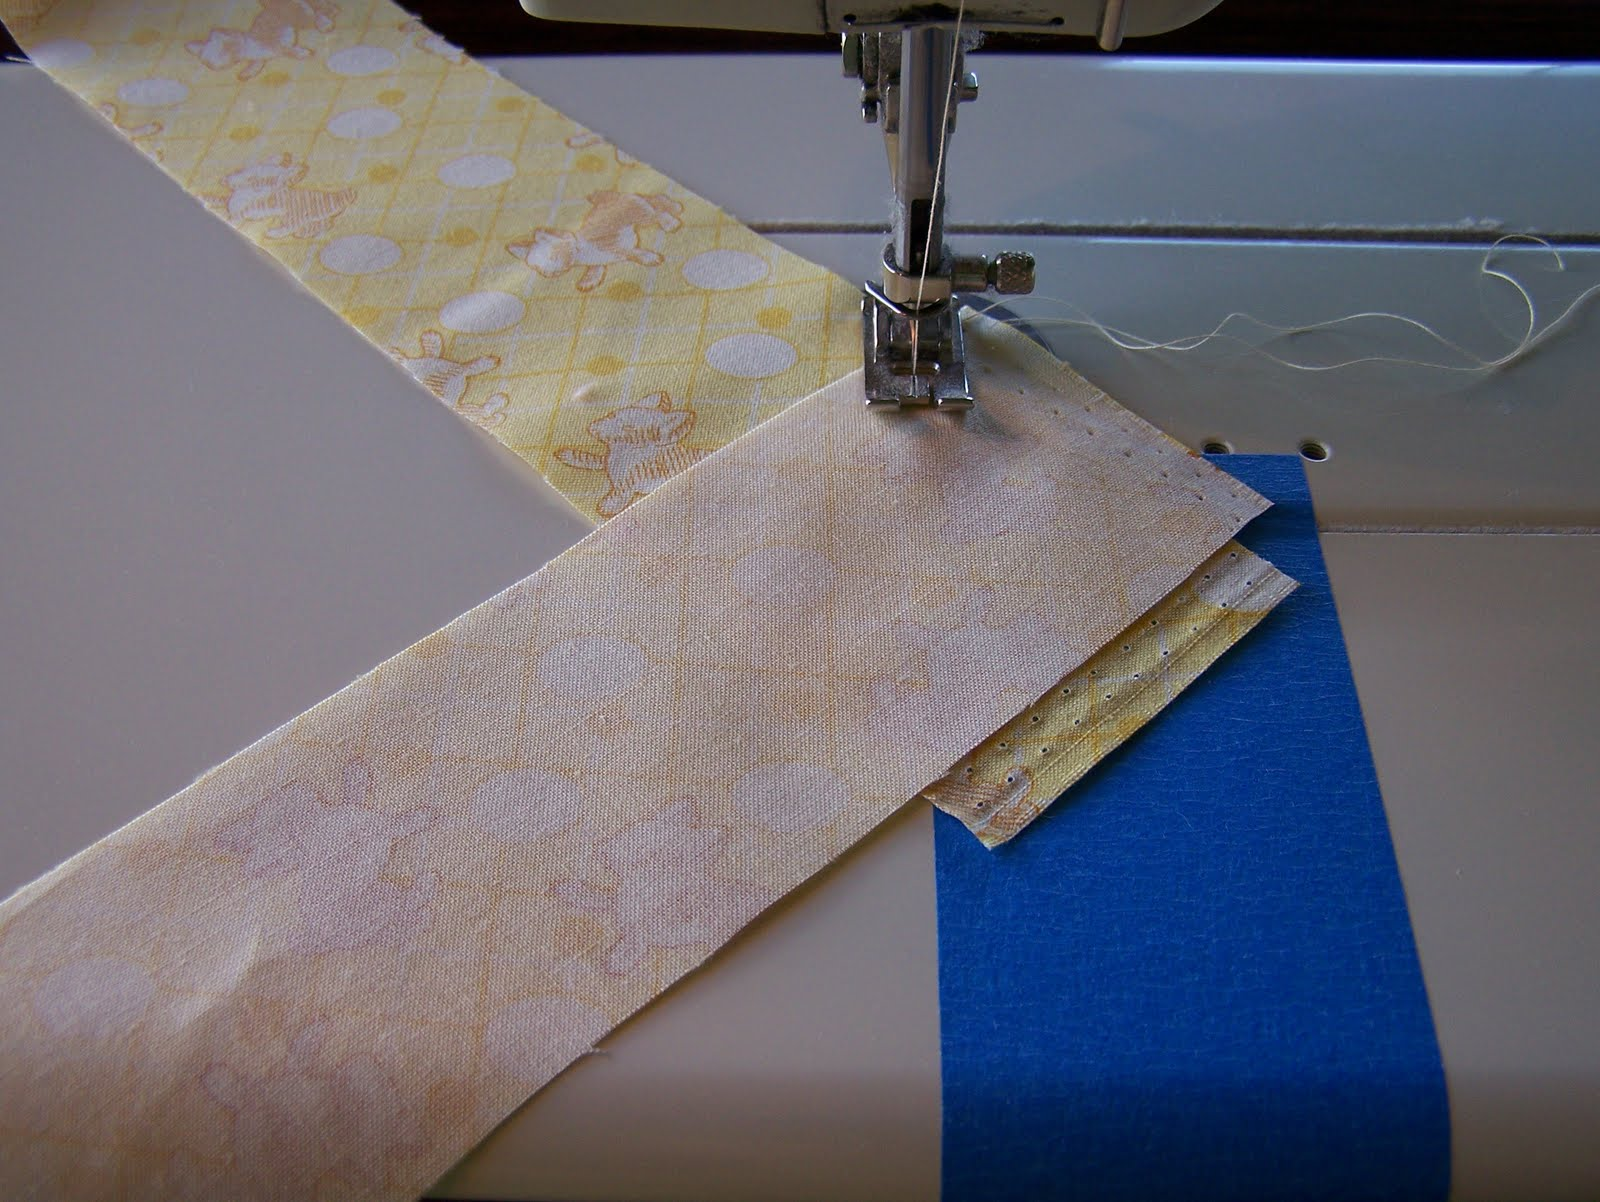 how to put a quilt together without binding